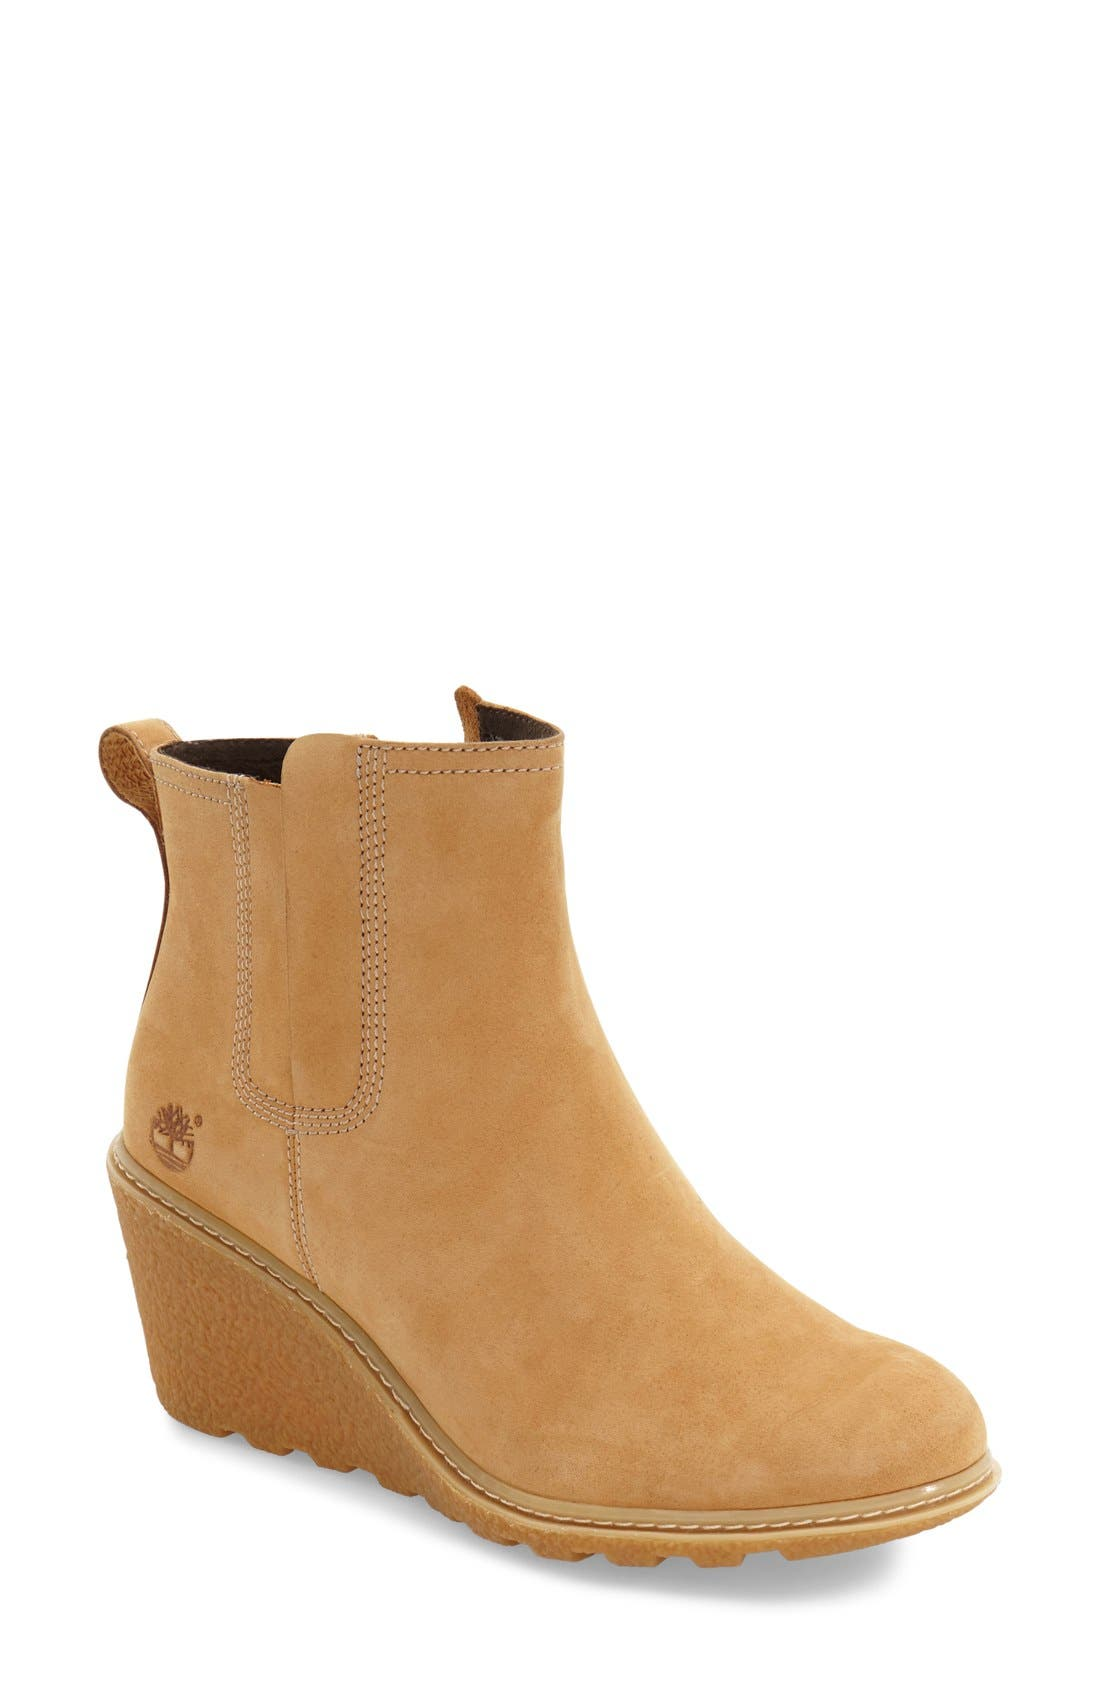 Main Image - Timberland 'Amston' Chelsea Wedge Boot (Women)